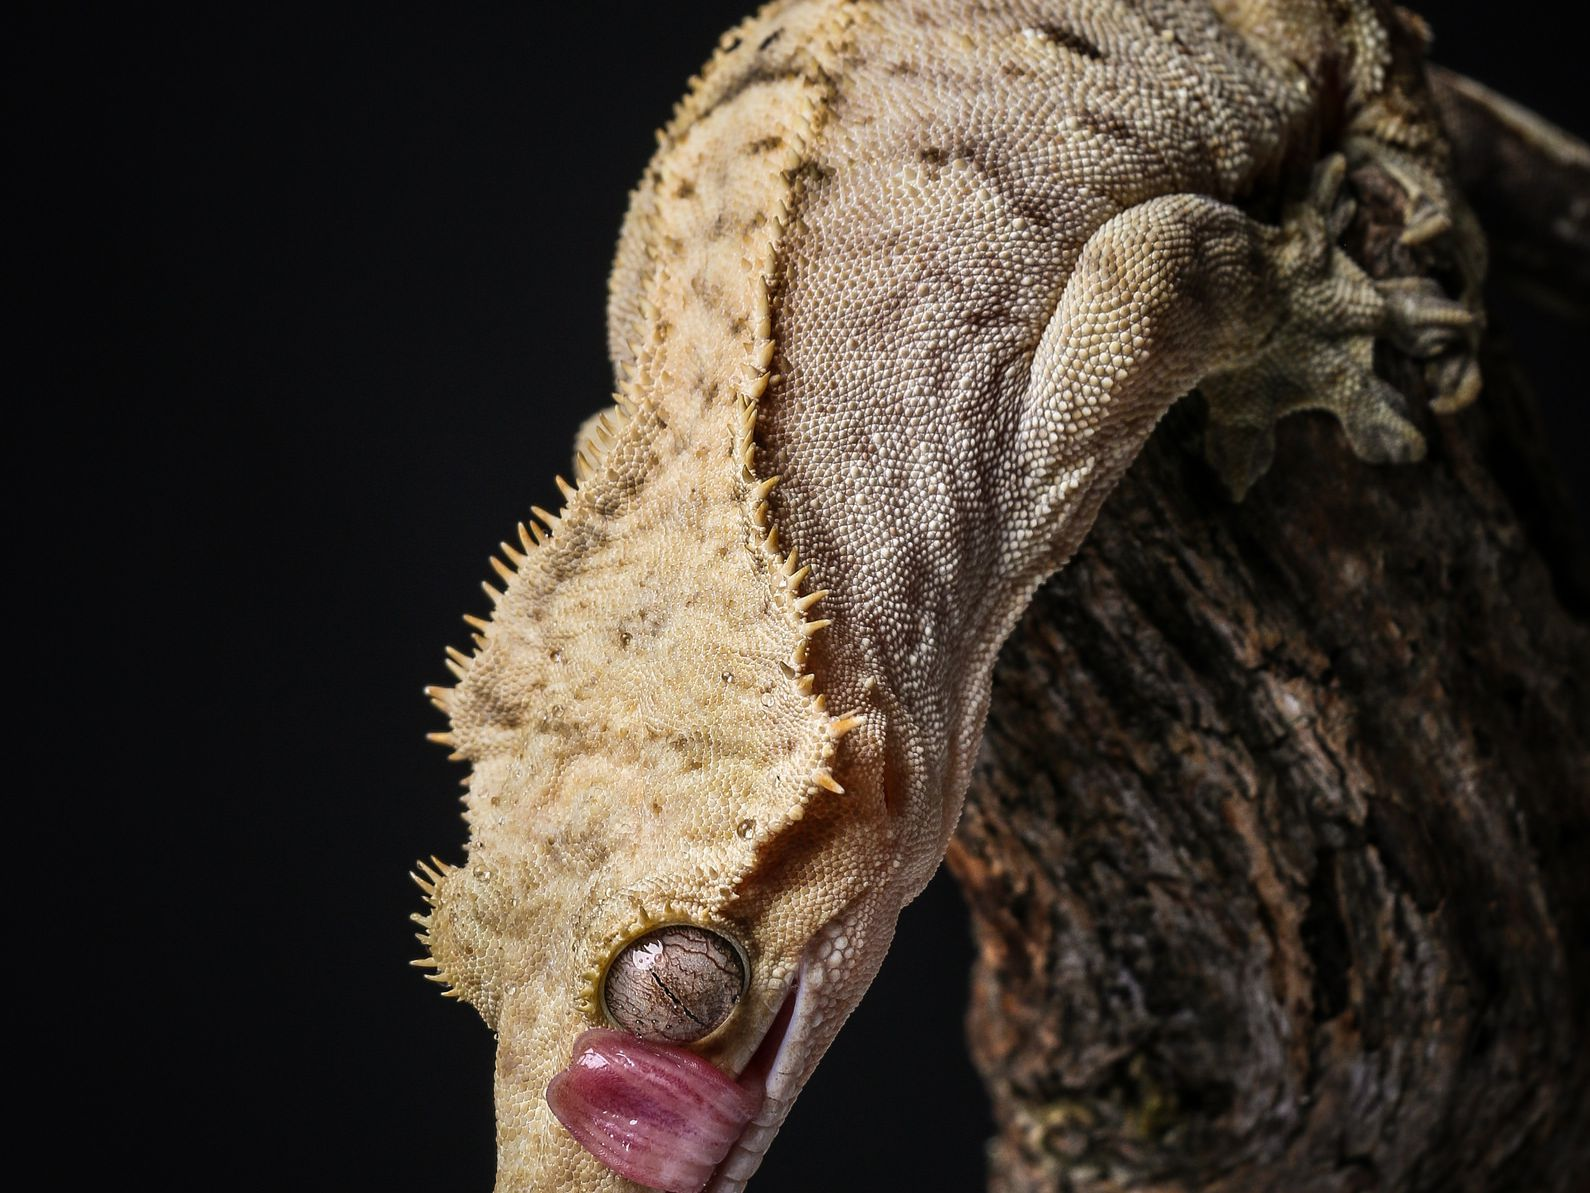 A Guide To Caring For Crested Geckos As Pets